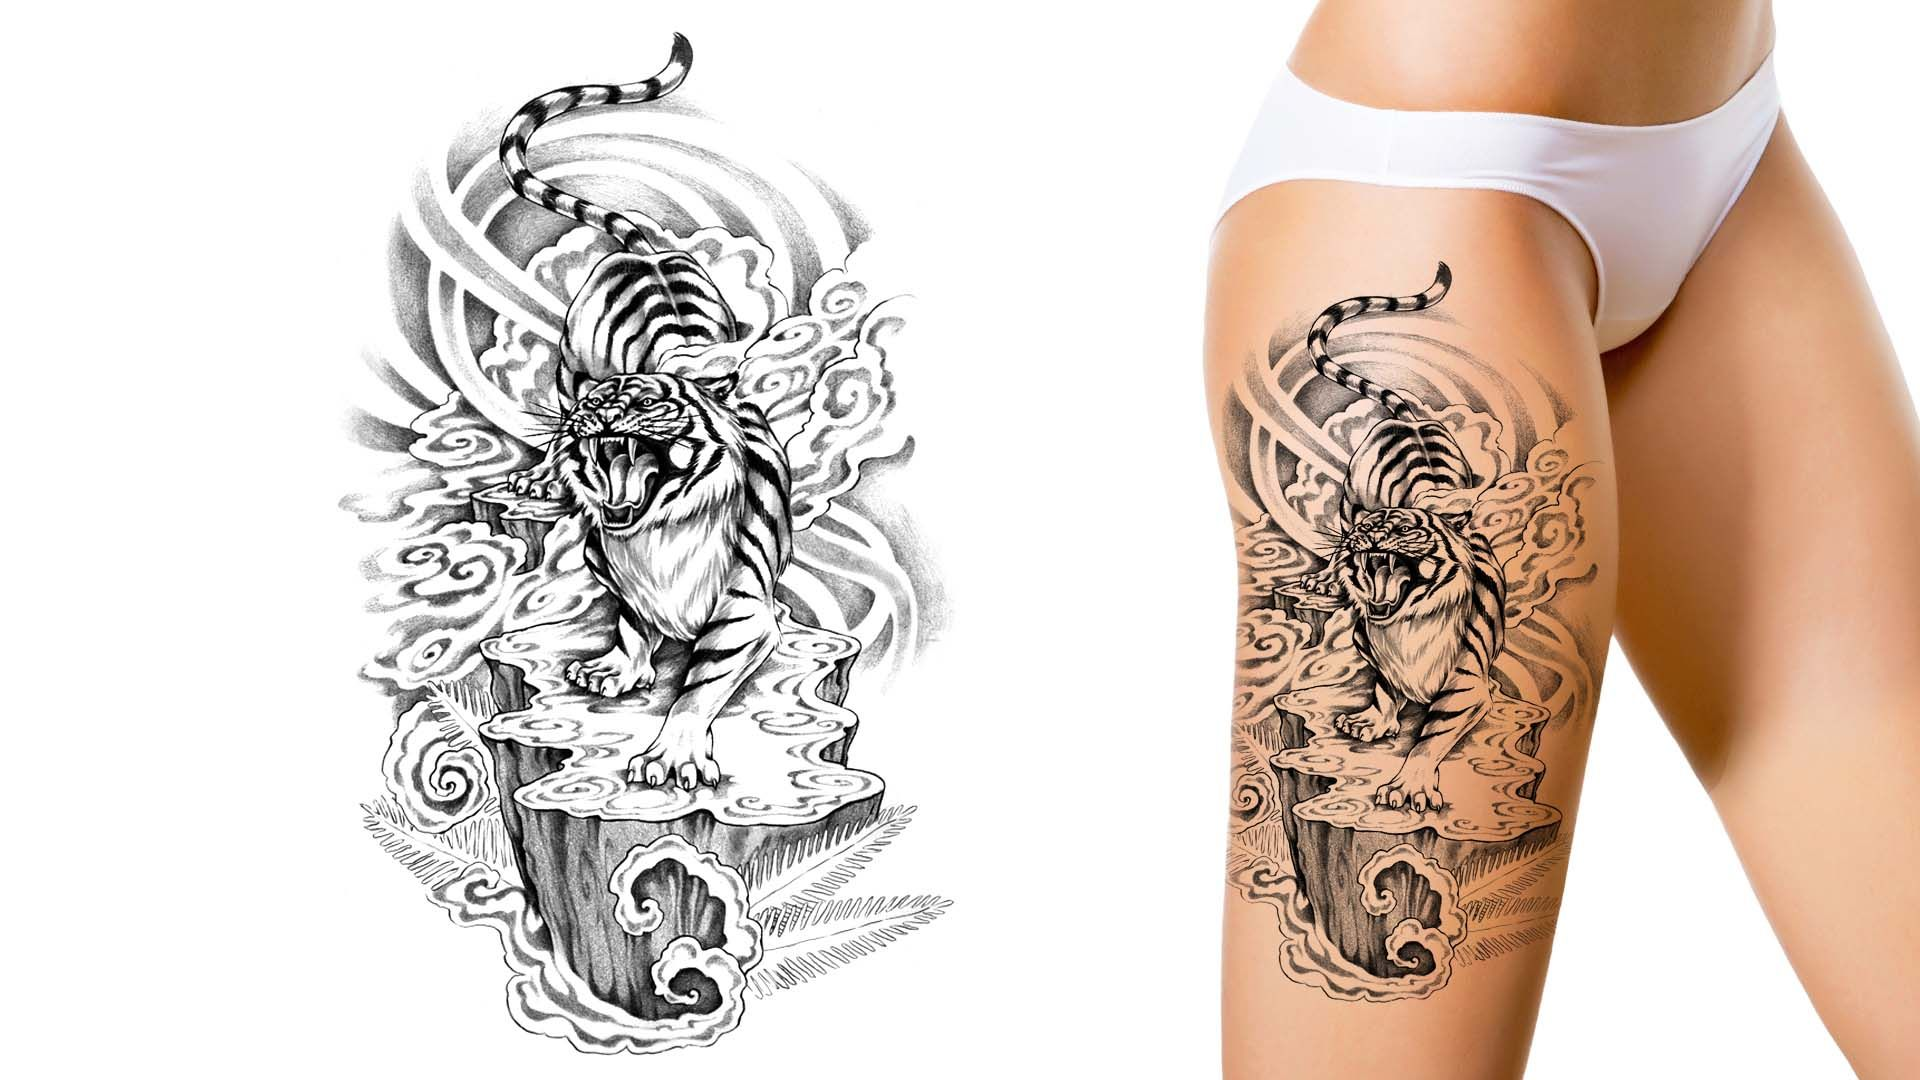 tiger tattoo you dream it we draw it get started on your custom tattoo design today. Black Bedroom Furniture Sets. Home Design Ideas